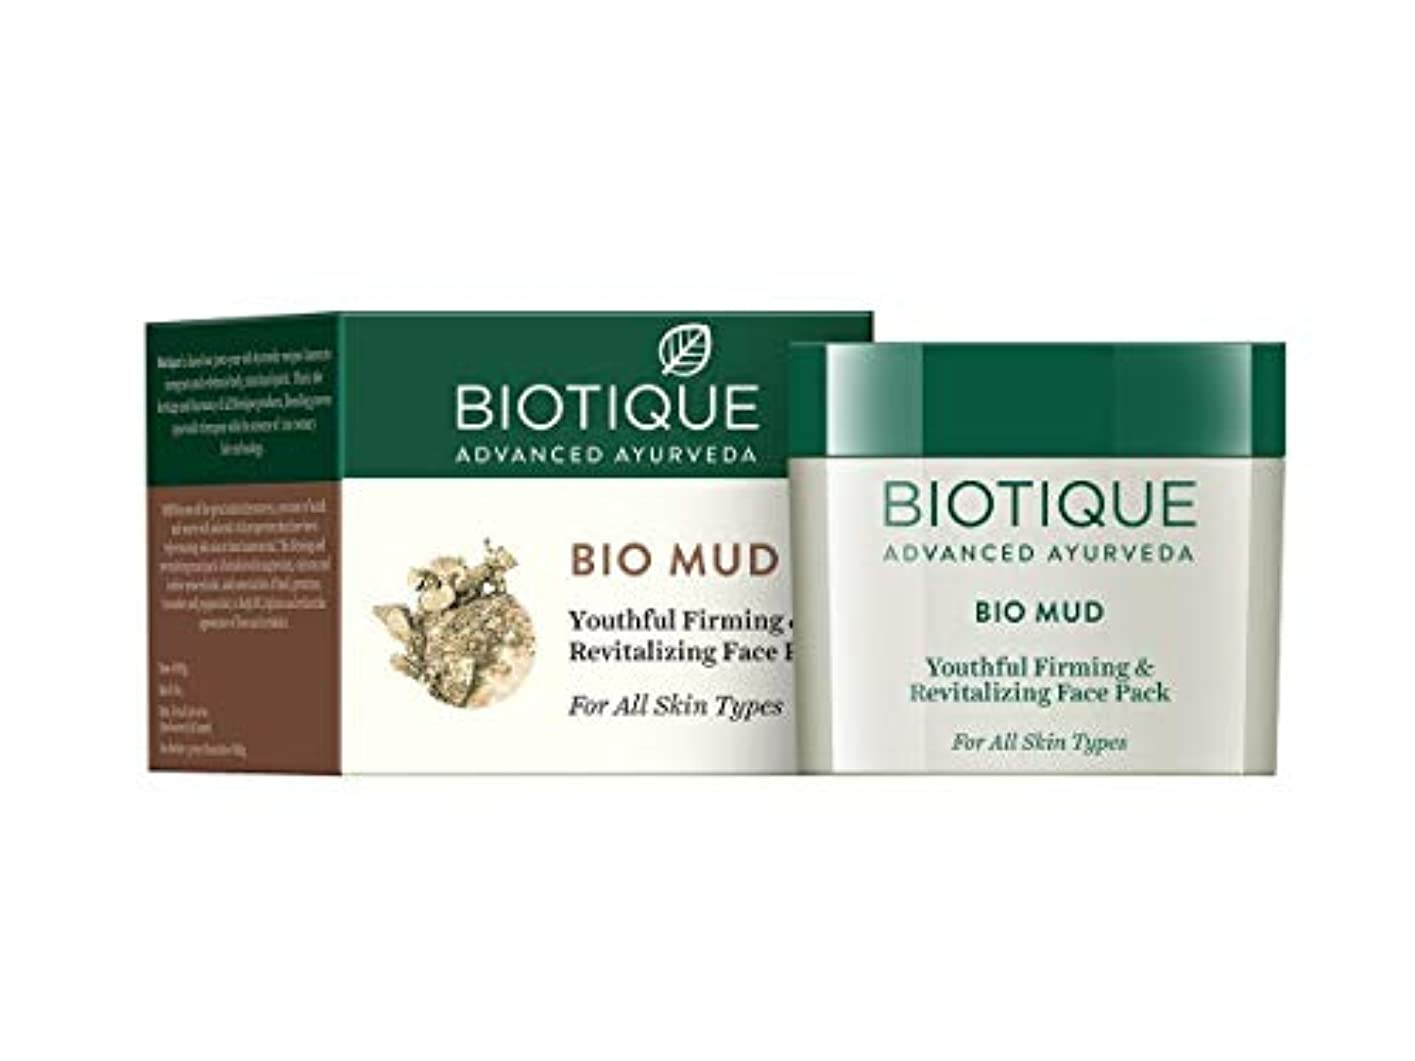 Biotique Mud Youthful Firming & Revitalizing Face Pack For All Skin Types 75 gm すべての肌タイプのためのBiotique泥若々しい引き締めと...